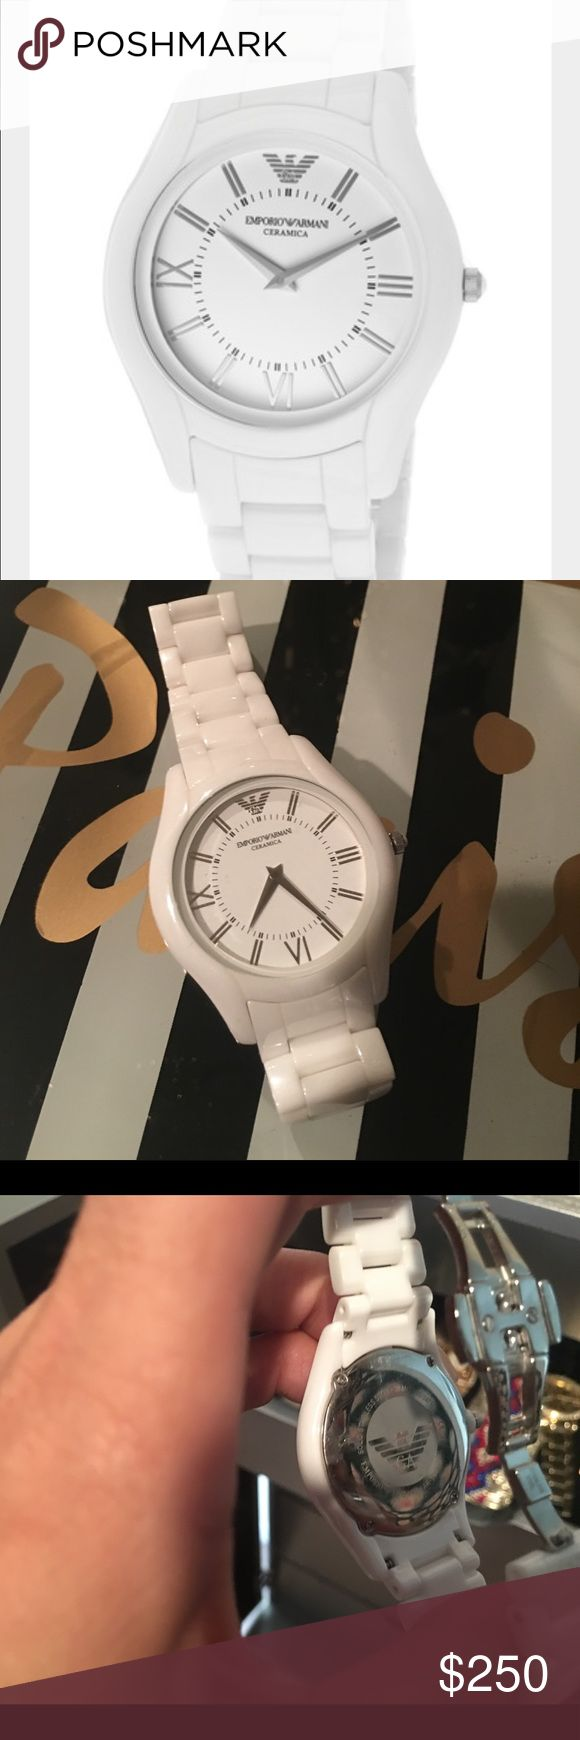 💎Emporio Armani White Ceramic Watch💎 Emporio Armani White Ceramic Watch! I have worn this watch a few times but it is still like new! I had a few links taken out so it is made for a small wrist! 😀 Emporio Armani Accessories Watches